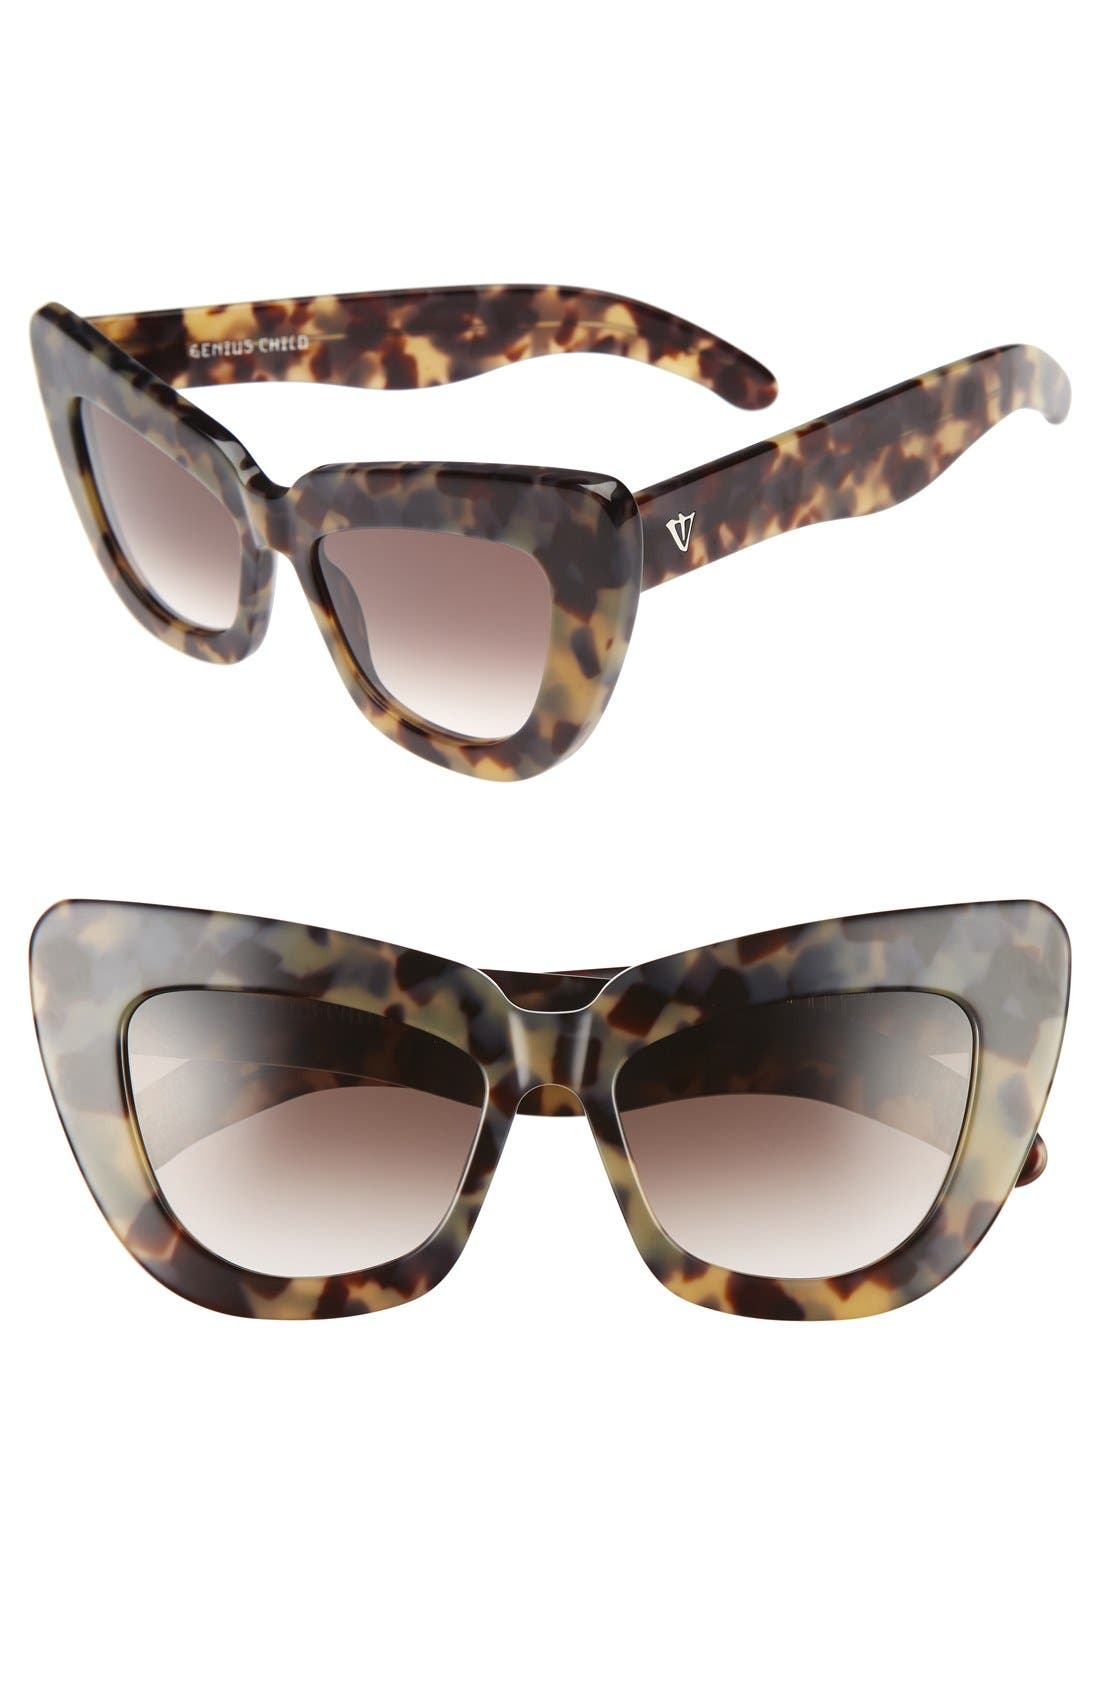 VALLEY 50mm Genius Child Cat Eye Sunglasses